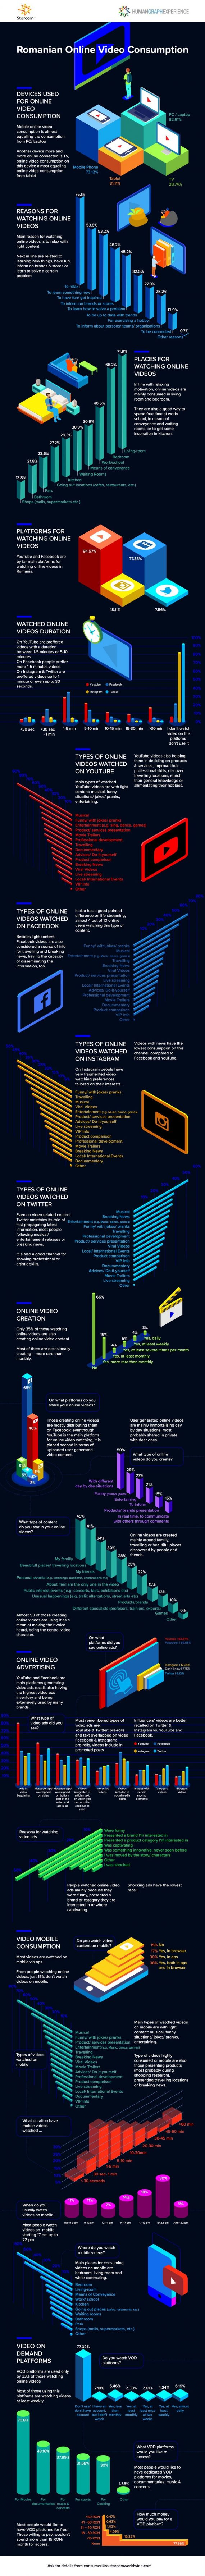 Infographic_Online-Video-Consumtion-compressor